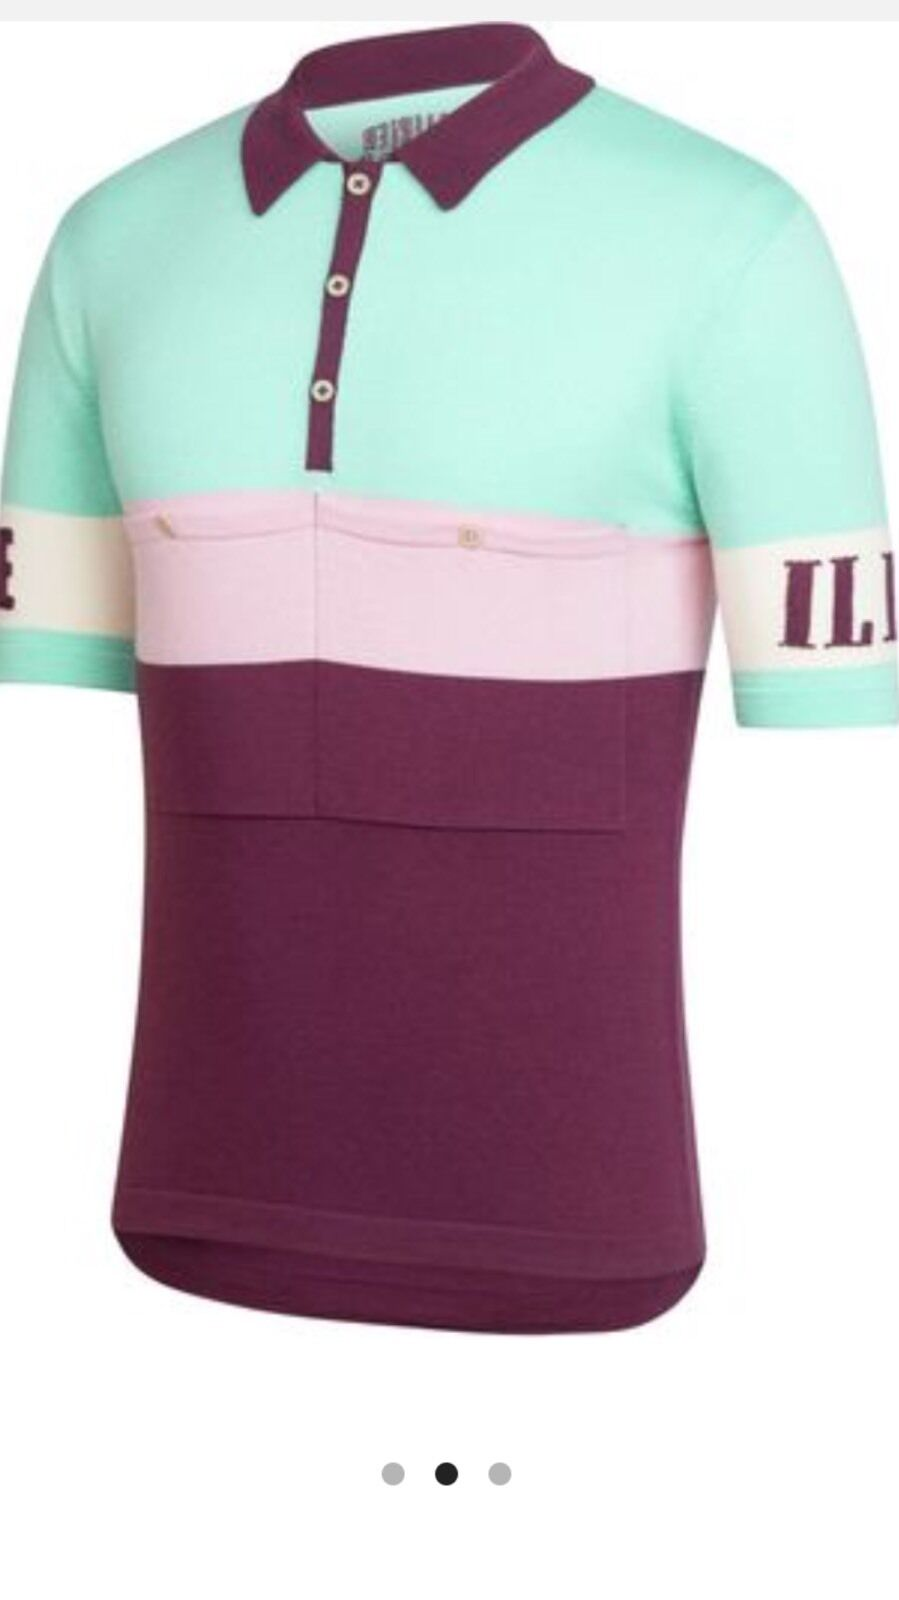 Rapha Rivalry Merino Classique Jersey-NEW W Tag-Large